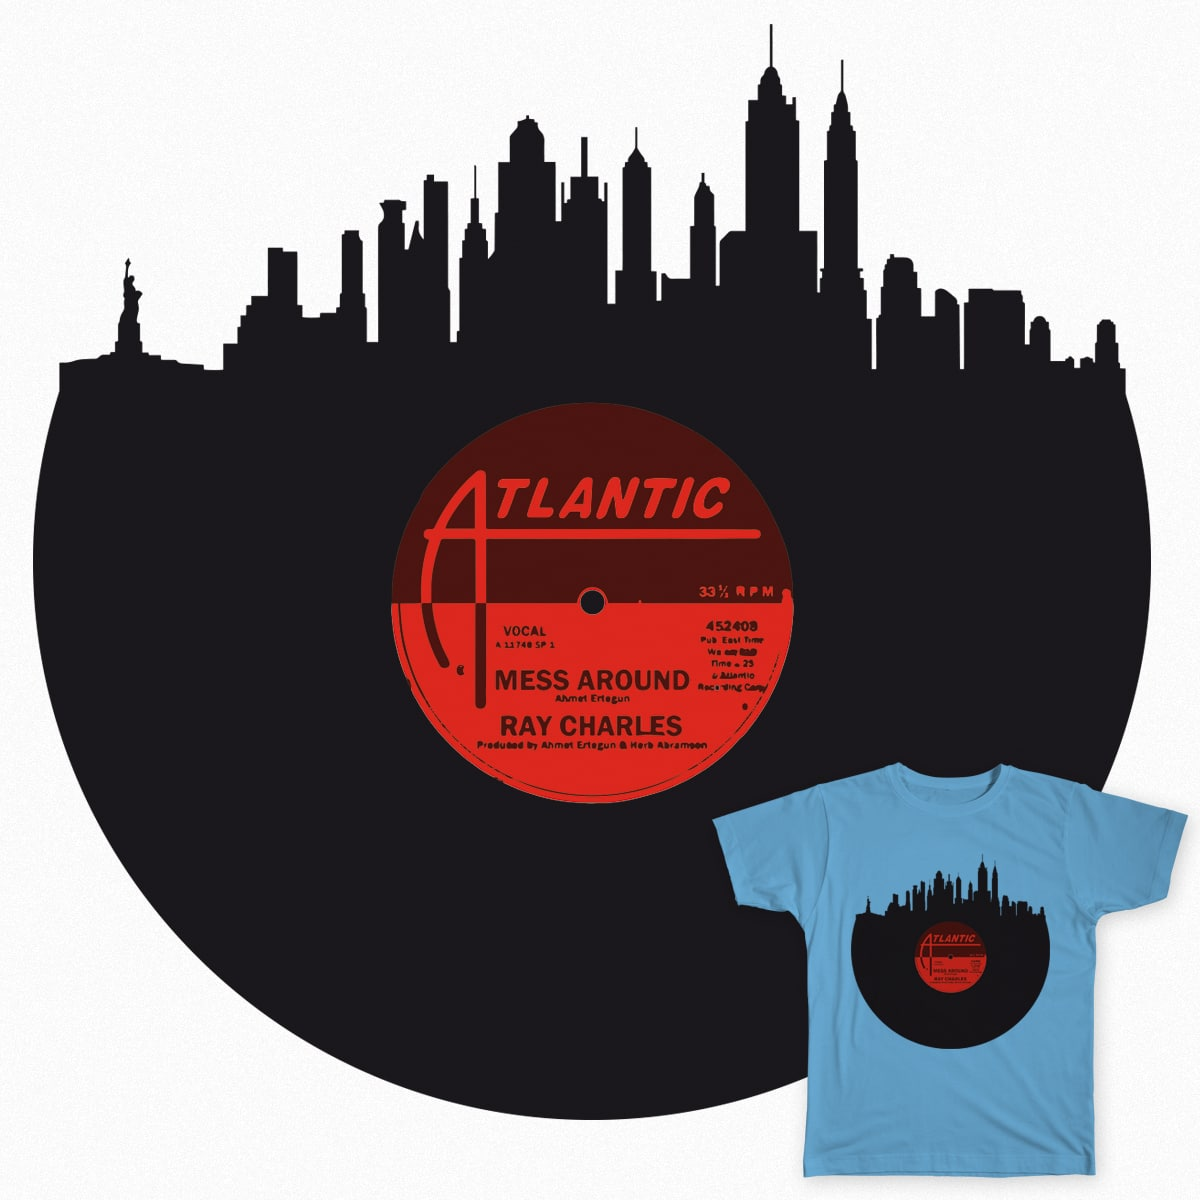 The city that never sleeps by danireilly on Threadless